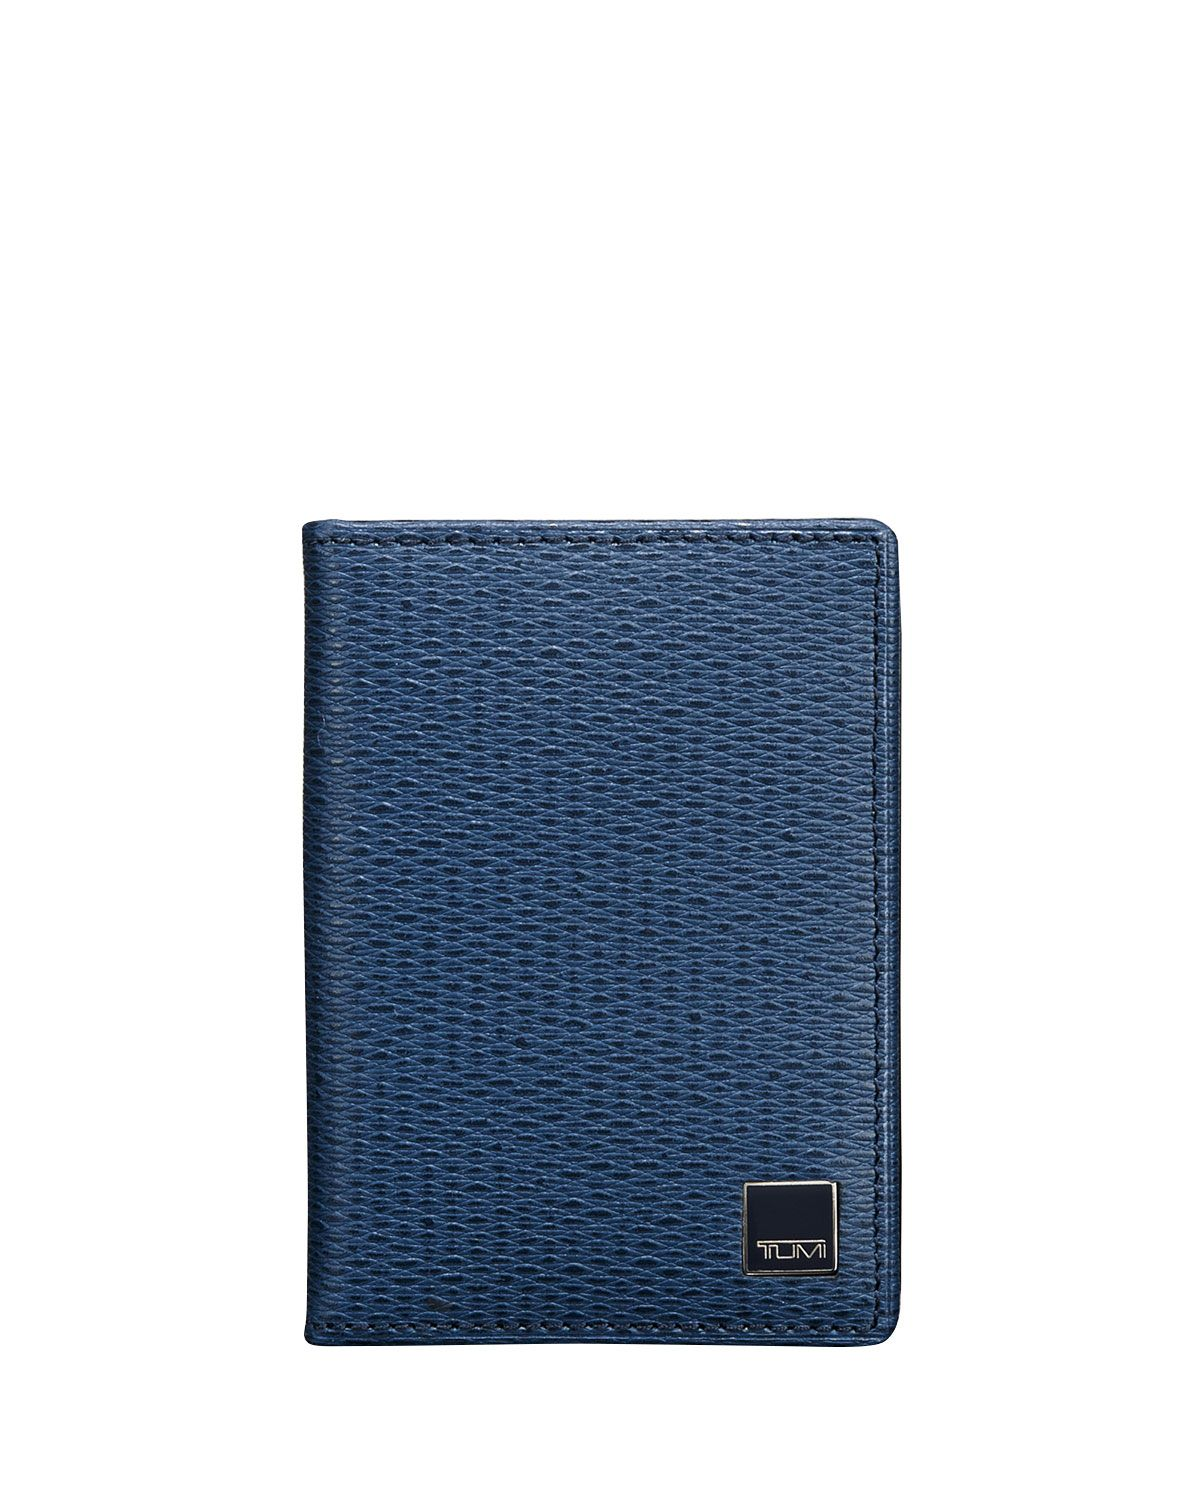 Monaco Gusseted Card Case with ID Lock Technology, Cobalt (Blue ...